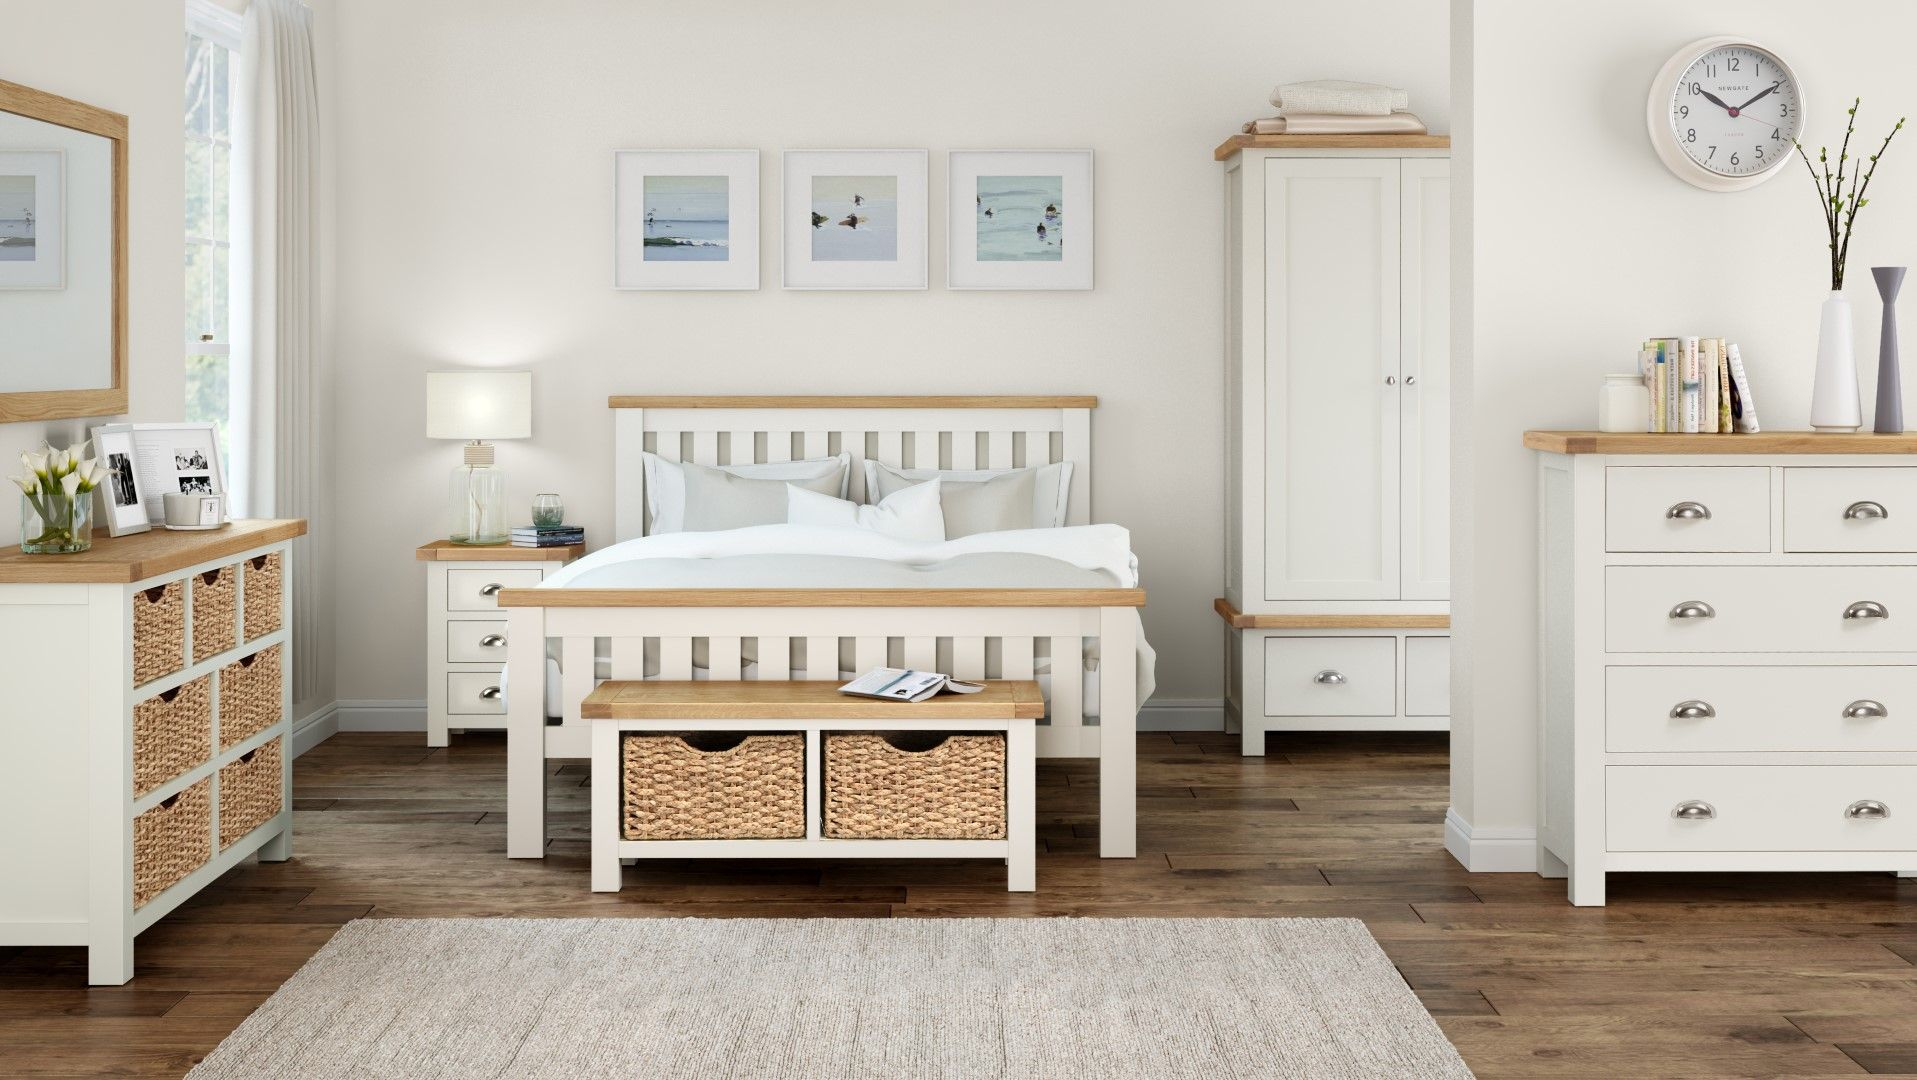 The Windsor Bedroom Range Of Furniture Is Painted In An Ivory Colour And Has Oiled Rustic Oak Tops The Acc At Home Furniture Store Furniture Painted Furniture